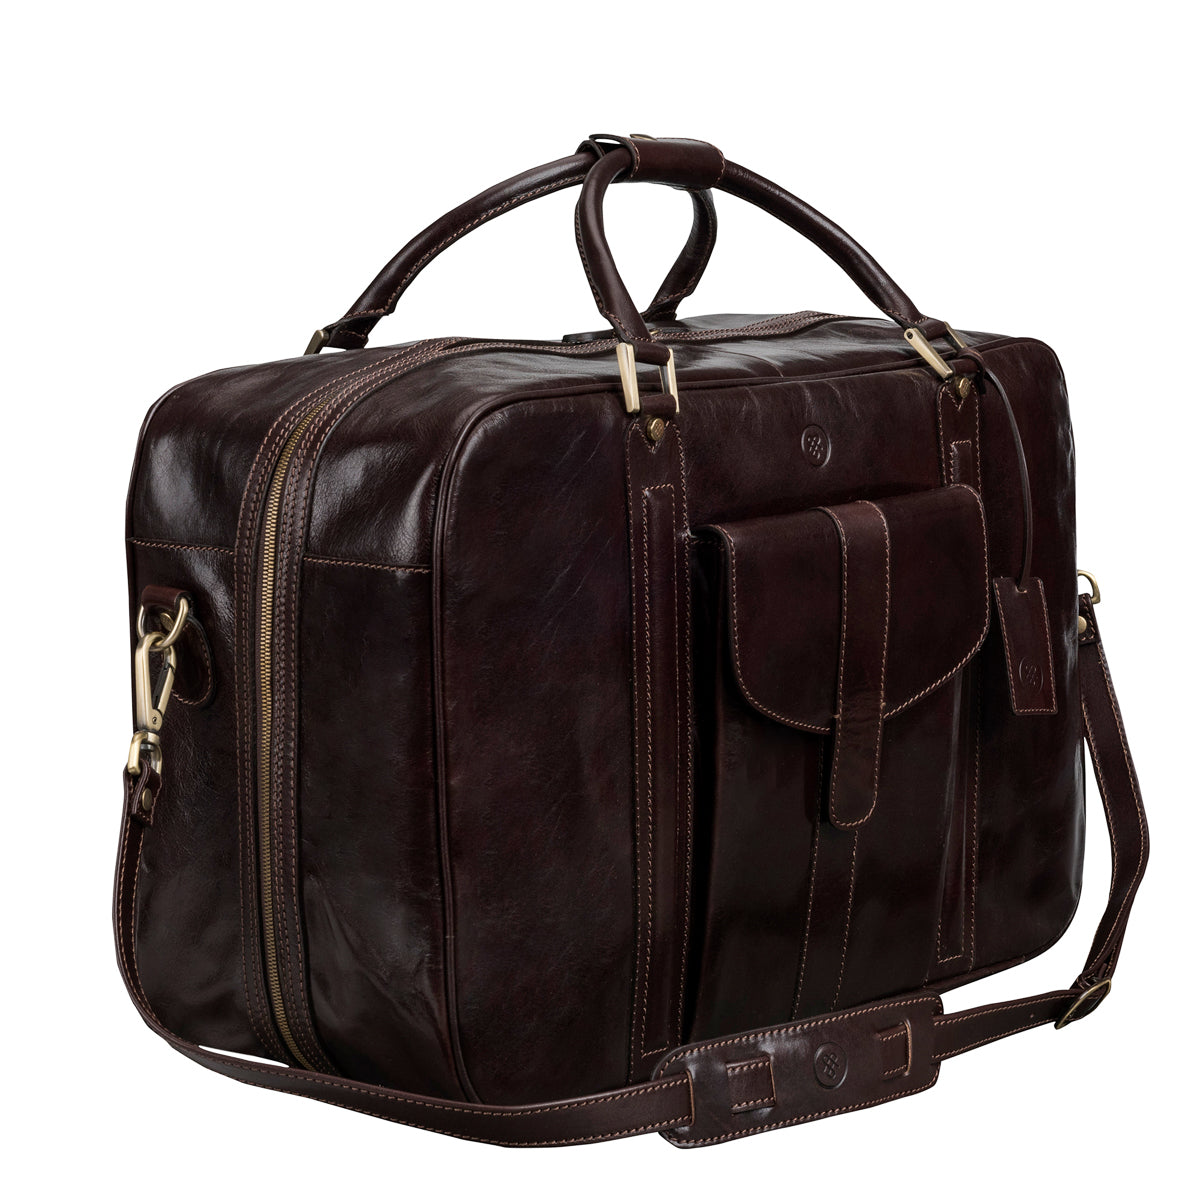 Image 2 of the 'Maurizio' Dark Chocolate Italian Veg-Tanned Leather Suitcase